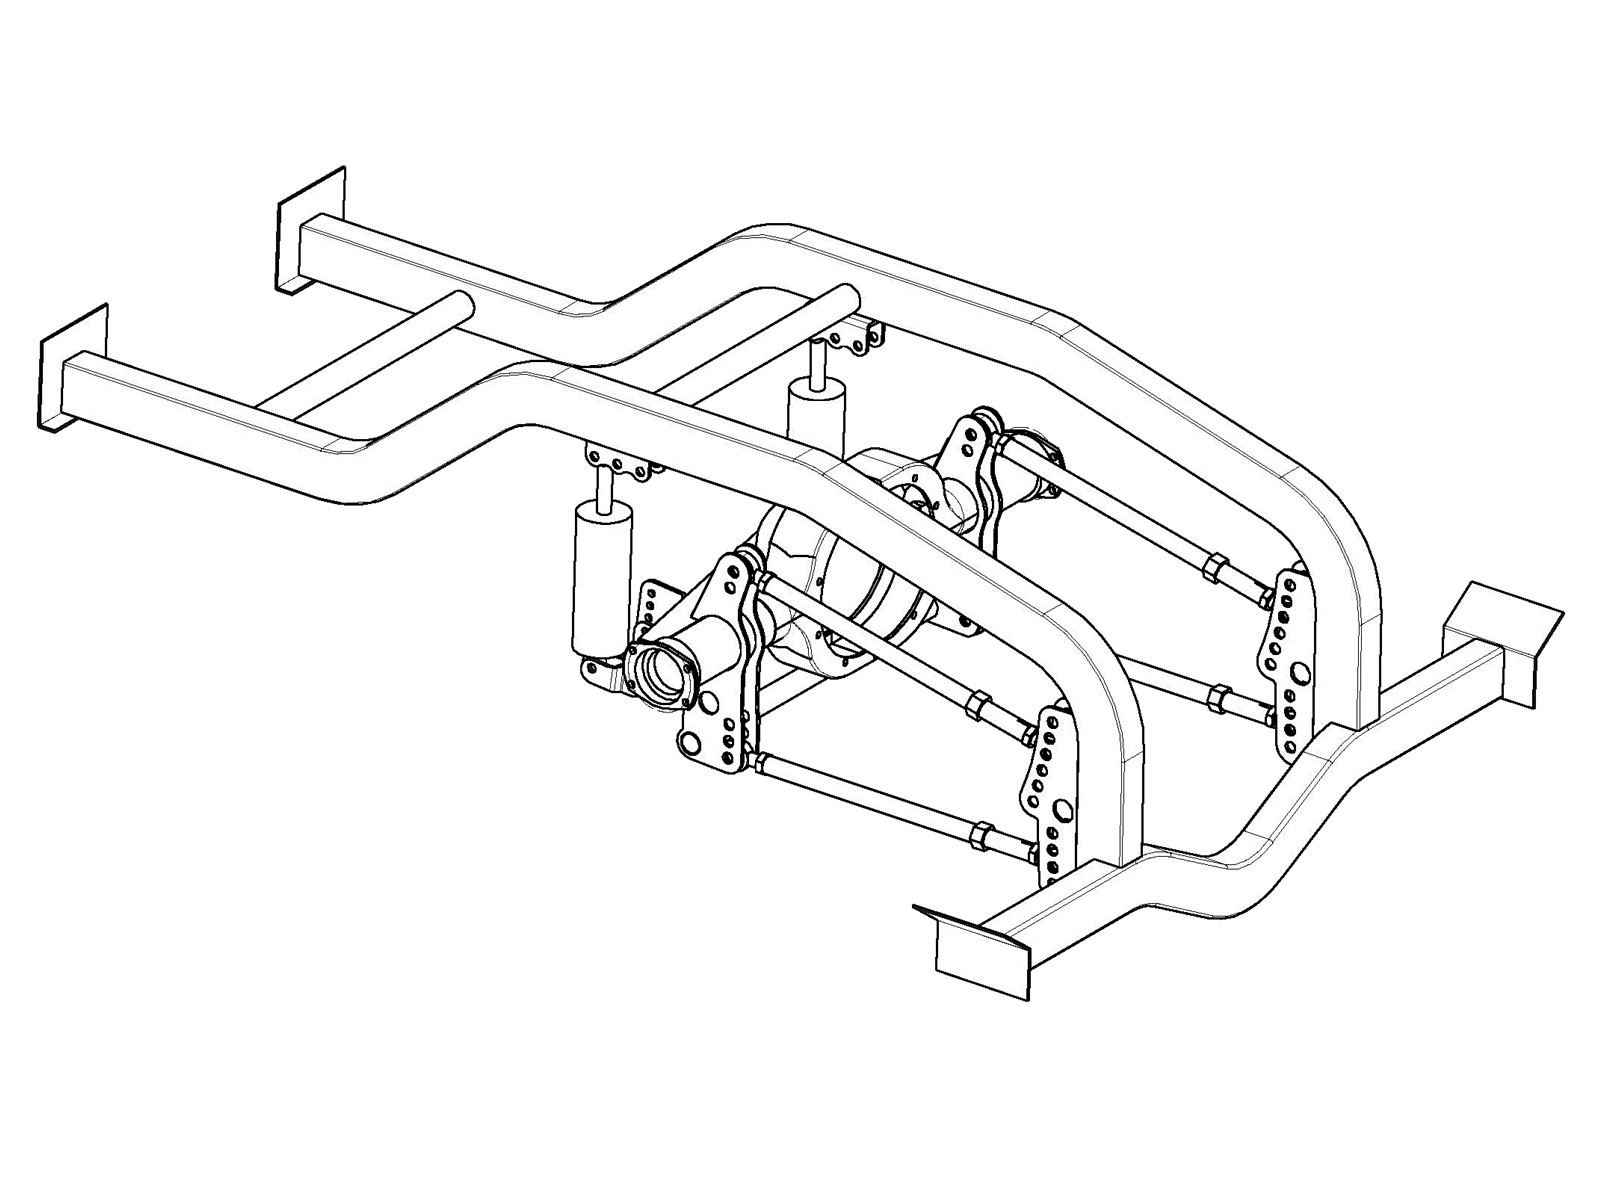 4 link pro mod suspension kit fits dana also 1 25 ted s modeling Diagram of Muffler ps0543 4 link drawing